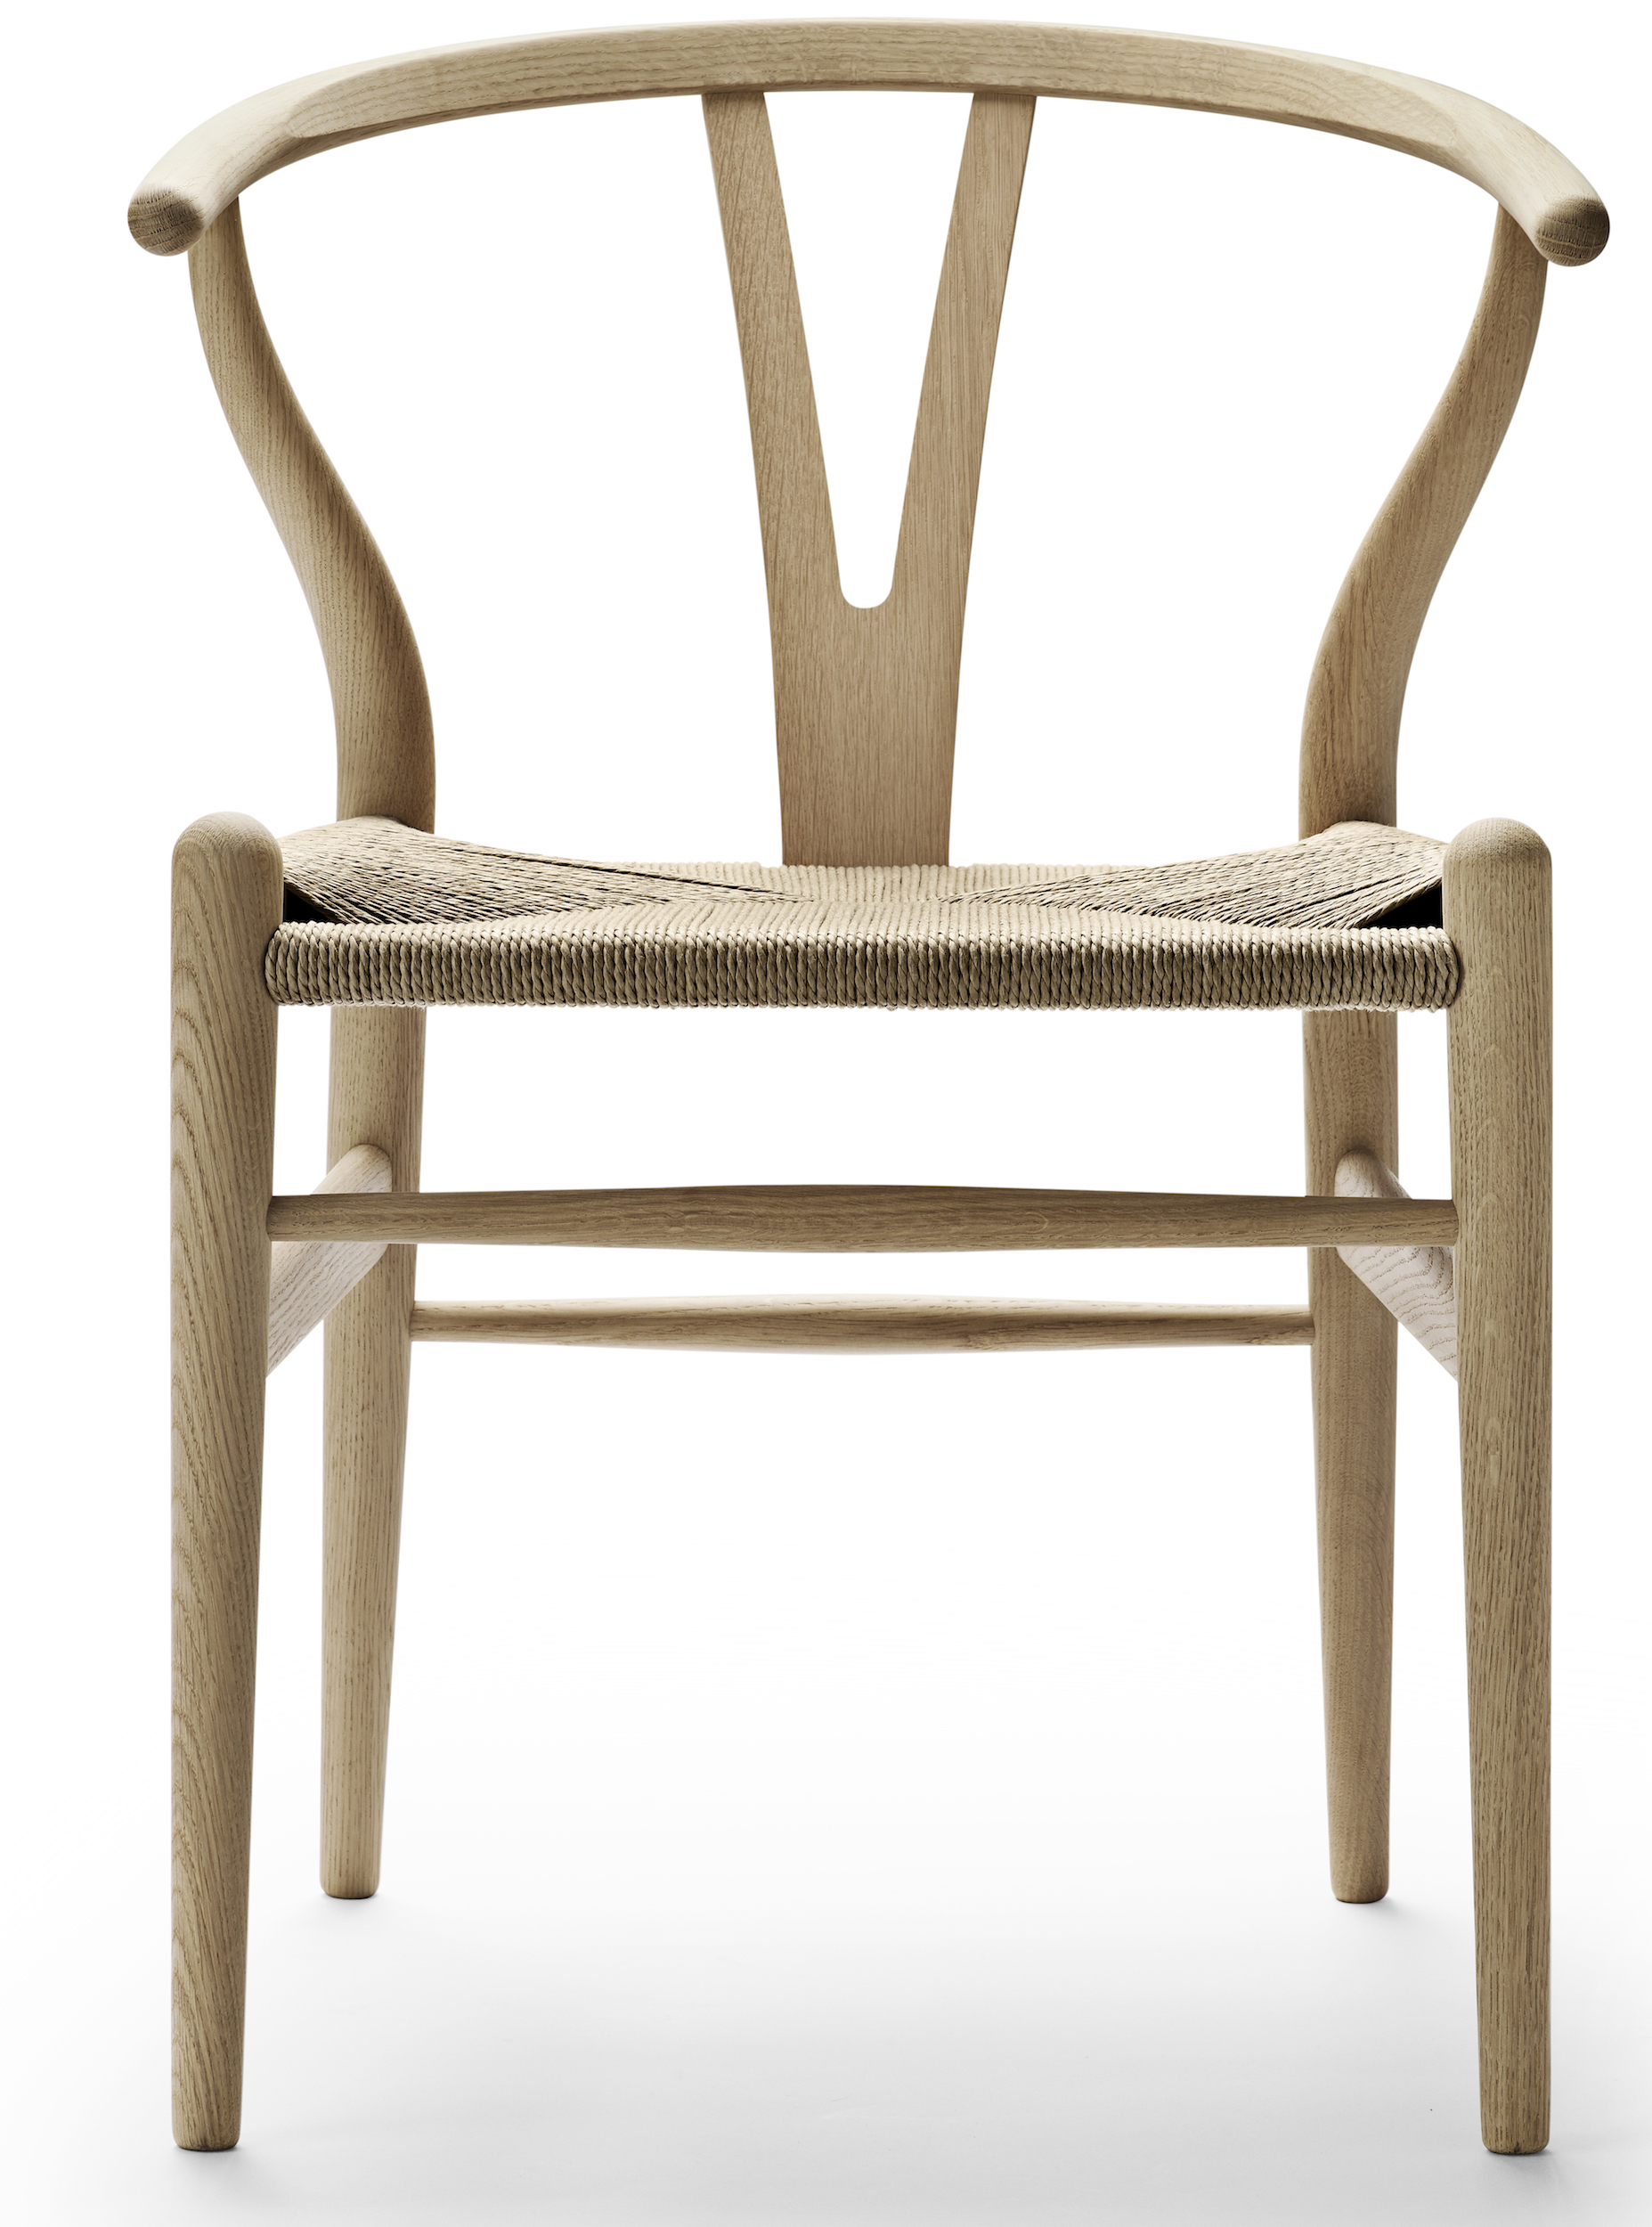 CH24 Chair   Or Wishbone Chair, Referring To His Back Recording A  Breastbone Of Chicken   Is One Of The Most Popular Chairs By Hans Wegner.